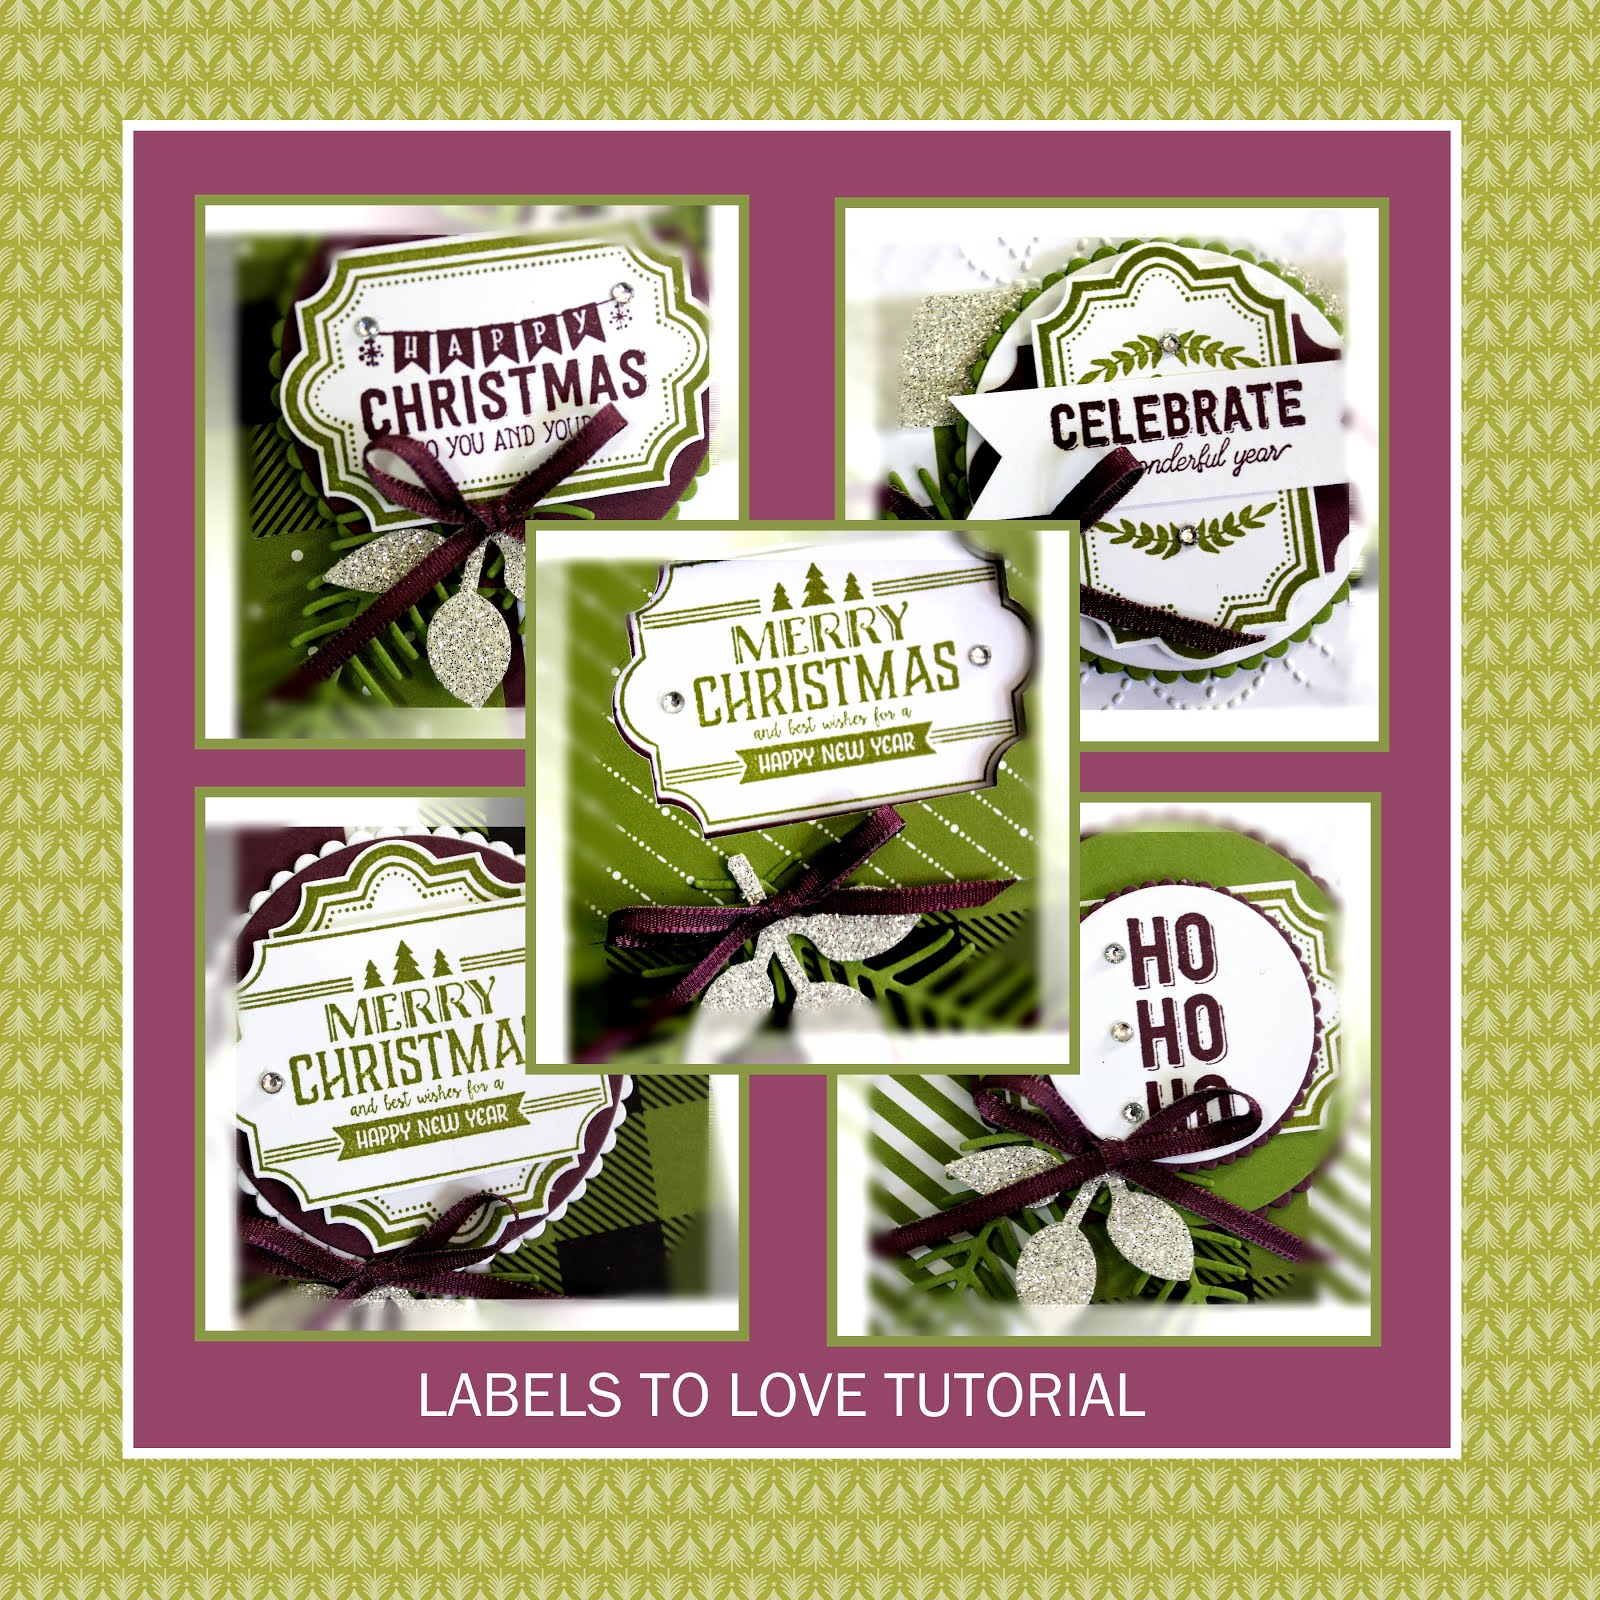 November 2017 Labels To Love Tutorial